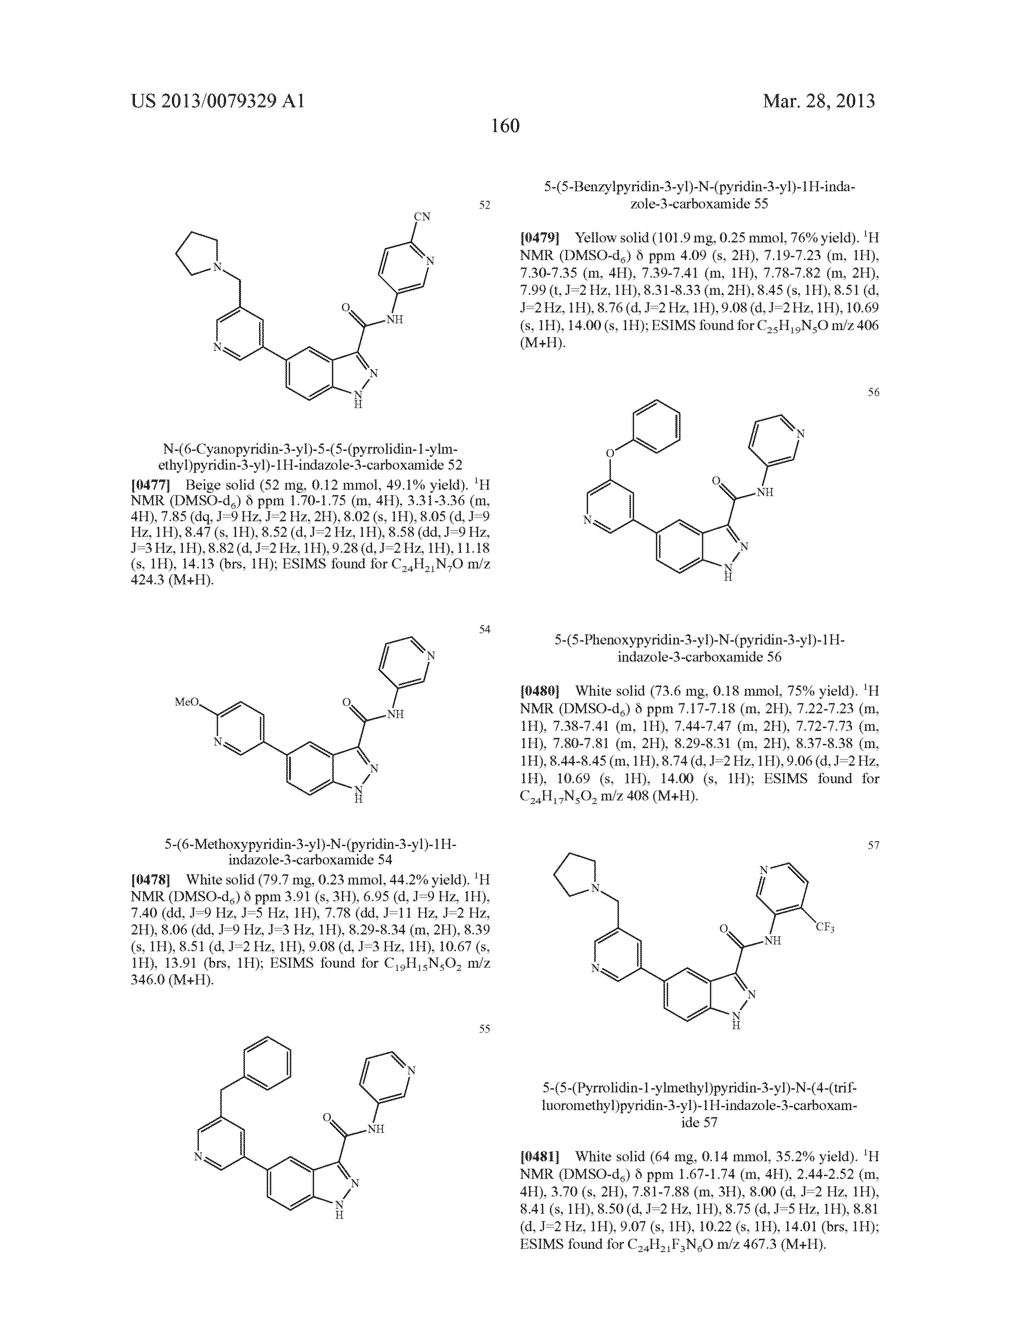 INDAZOLE-3-CARBOXAMIDES AND THEIR USE AS WNT/Beta-CATENIN SIGNALING     PATHWAY INHIBITORS - diagram, schematic, and image 161